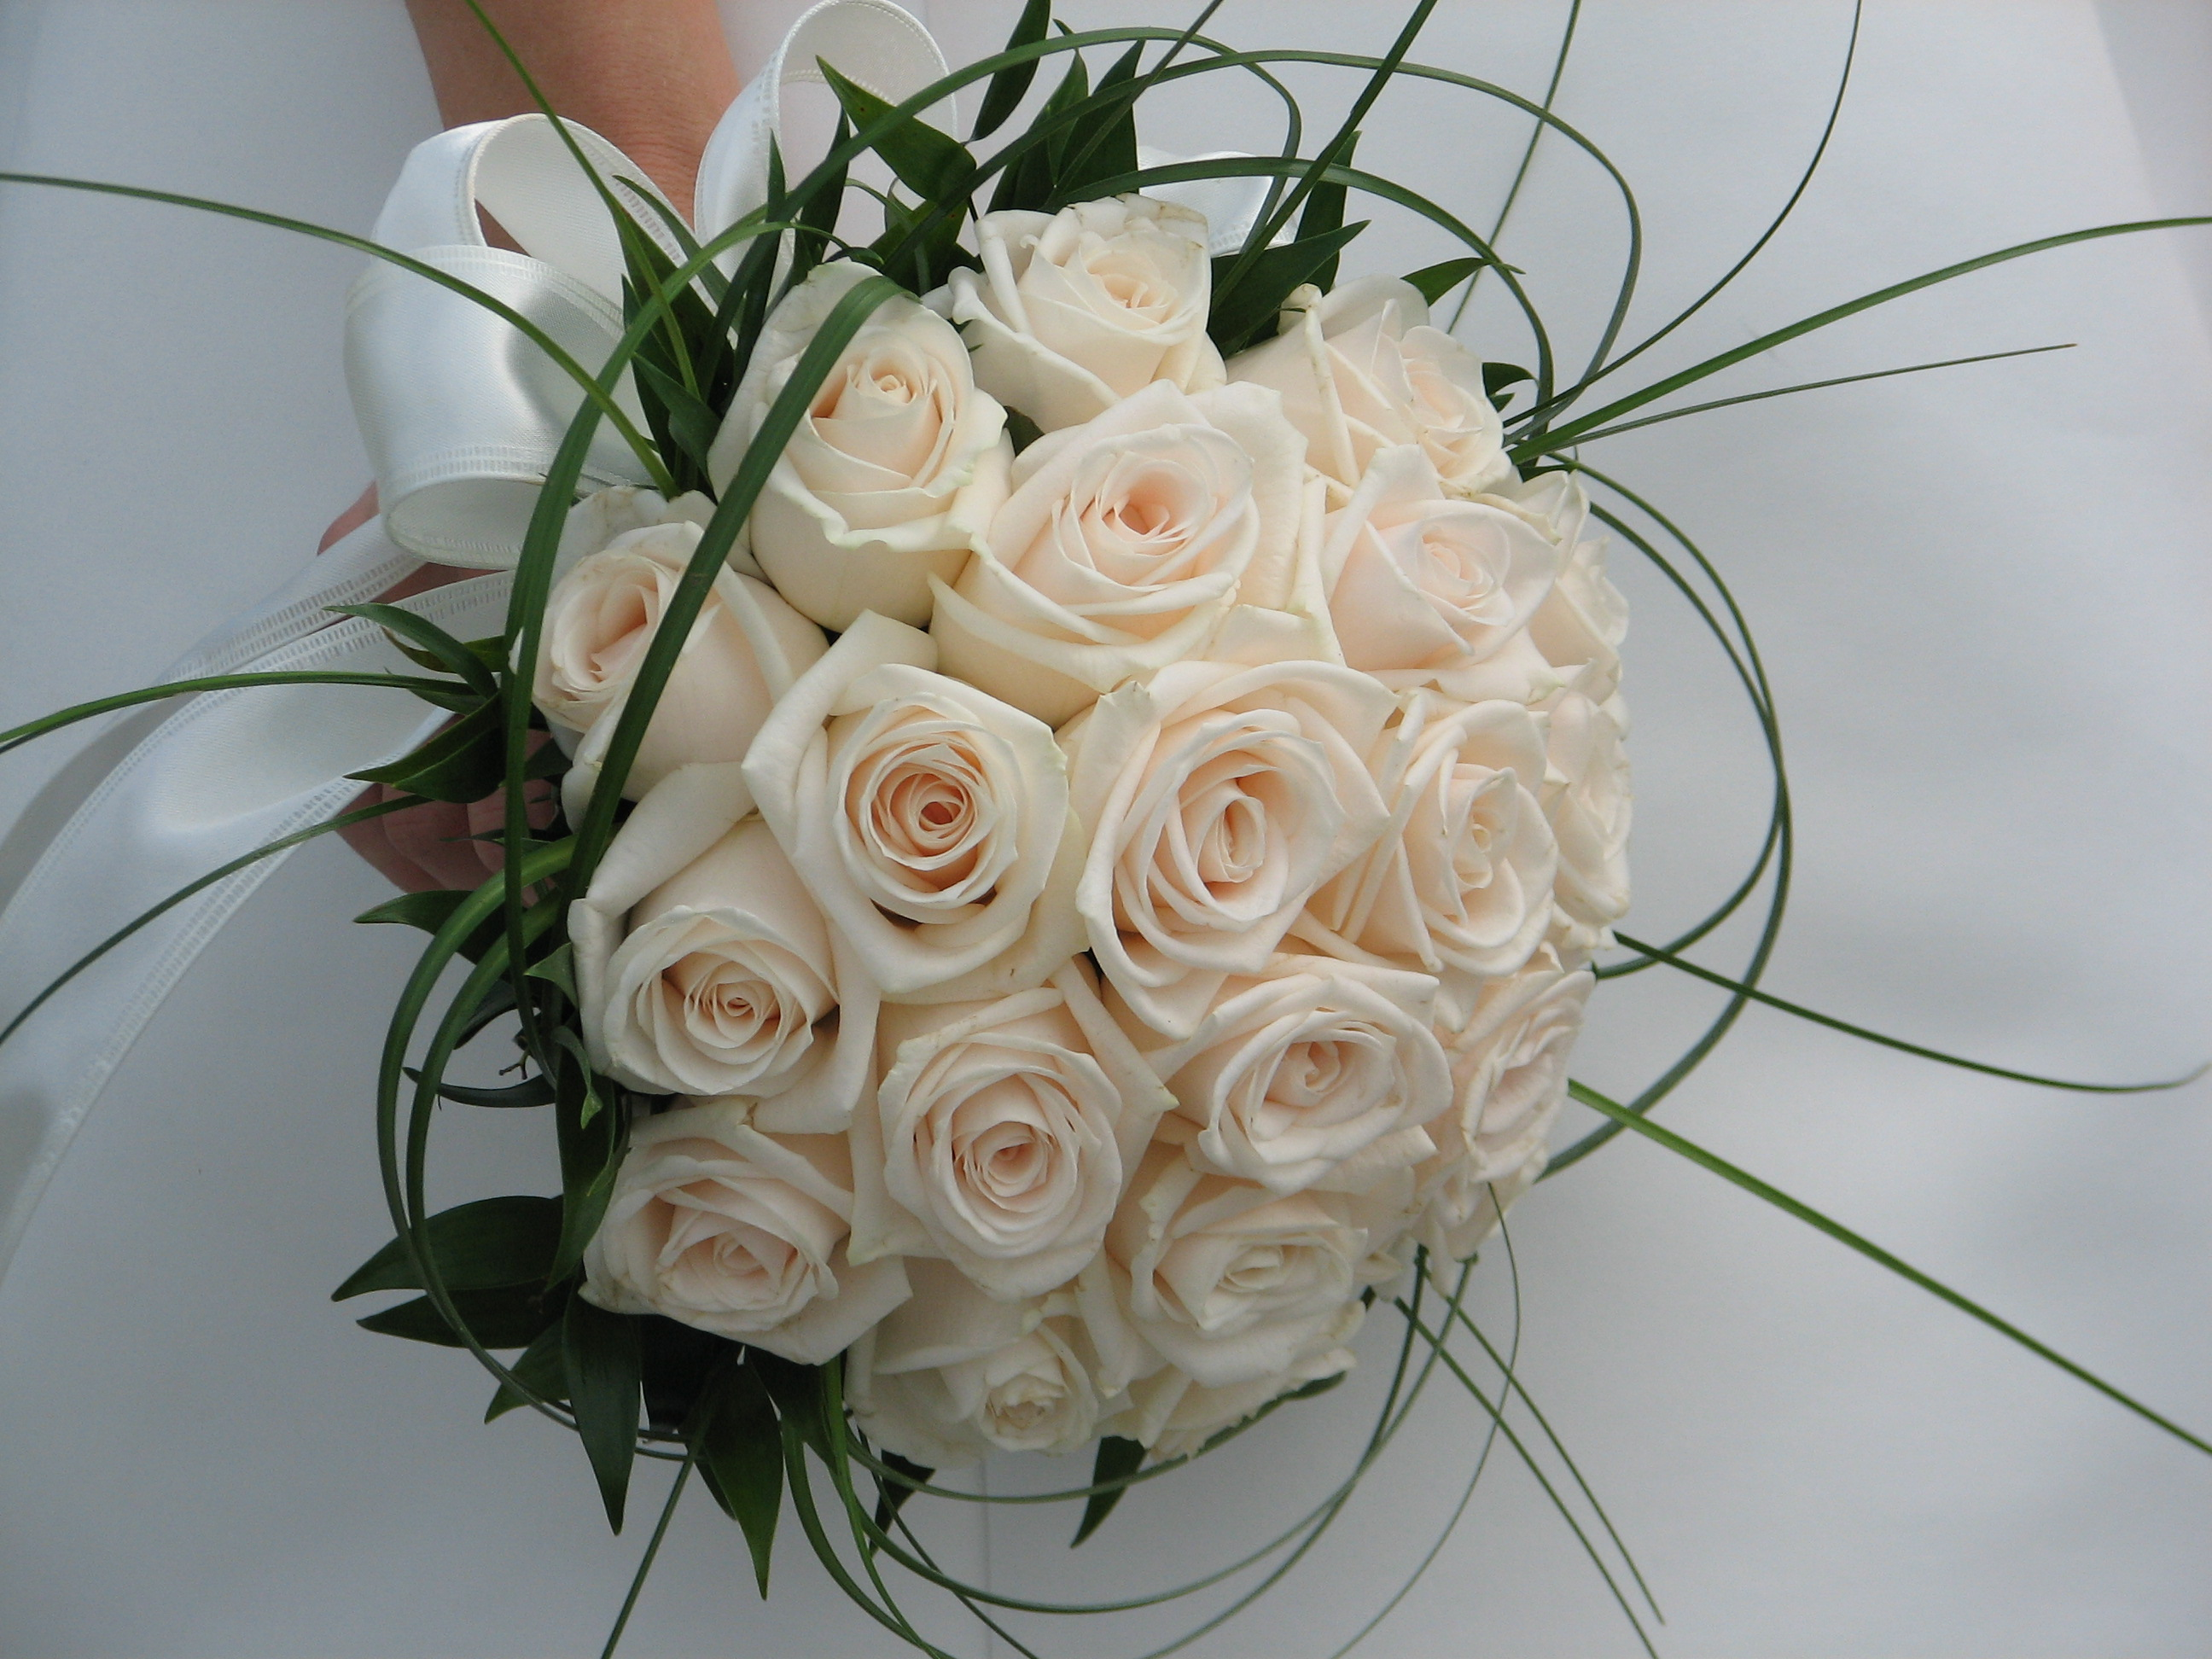 Outstanding Wedding Flower Bouquets Roses 2592 x 1944 · 1071 kB · jpeg